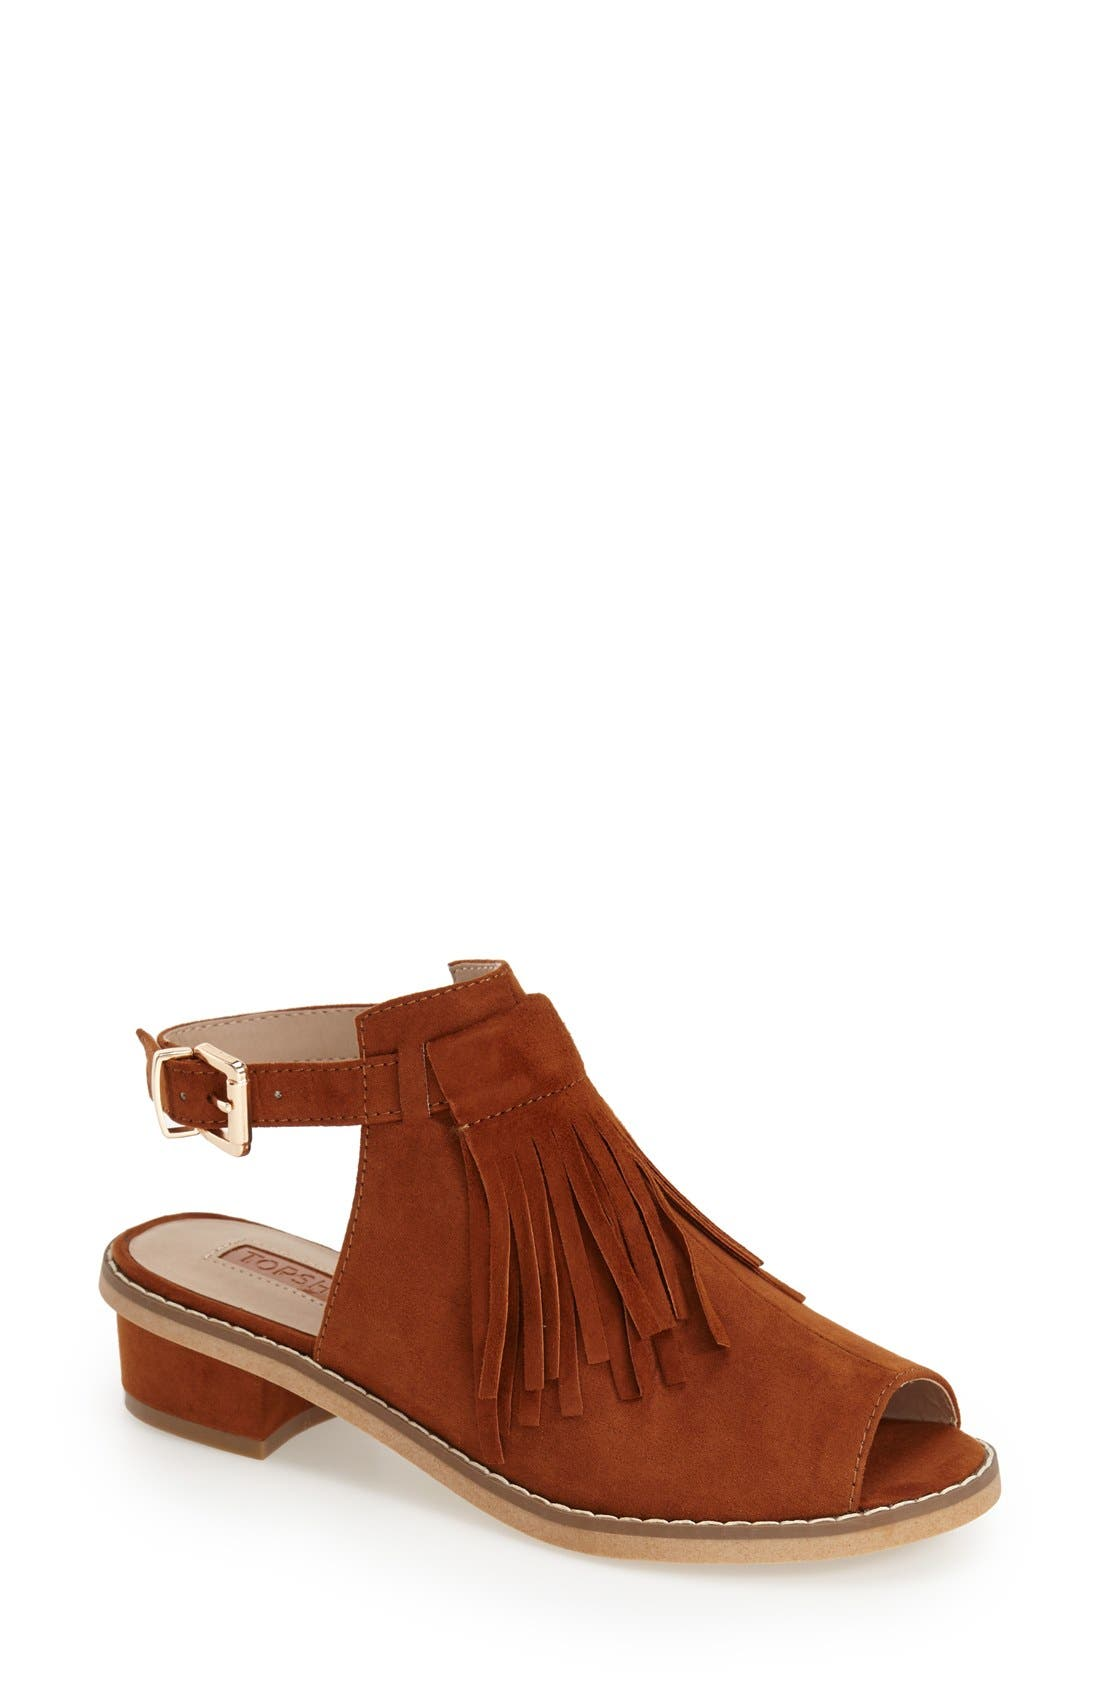 Alternate Image 1 Selected - Topshop 'Blinder' Fringe Sandal (Women)